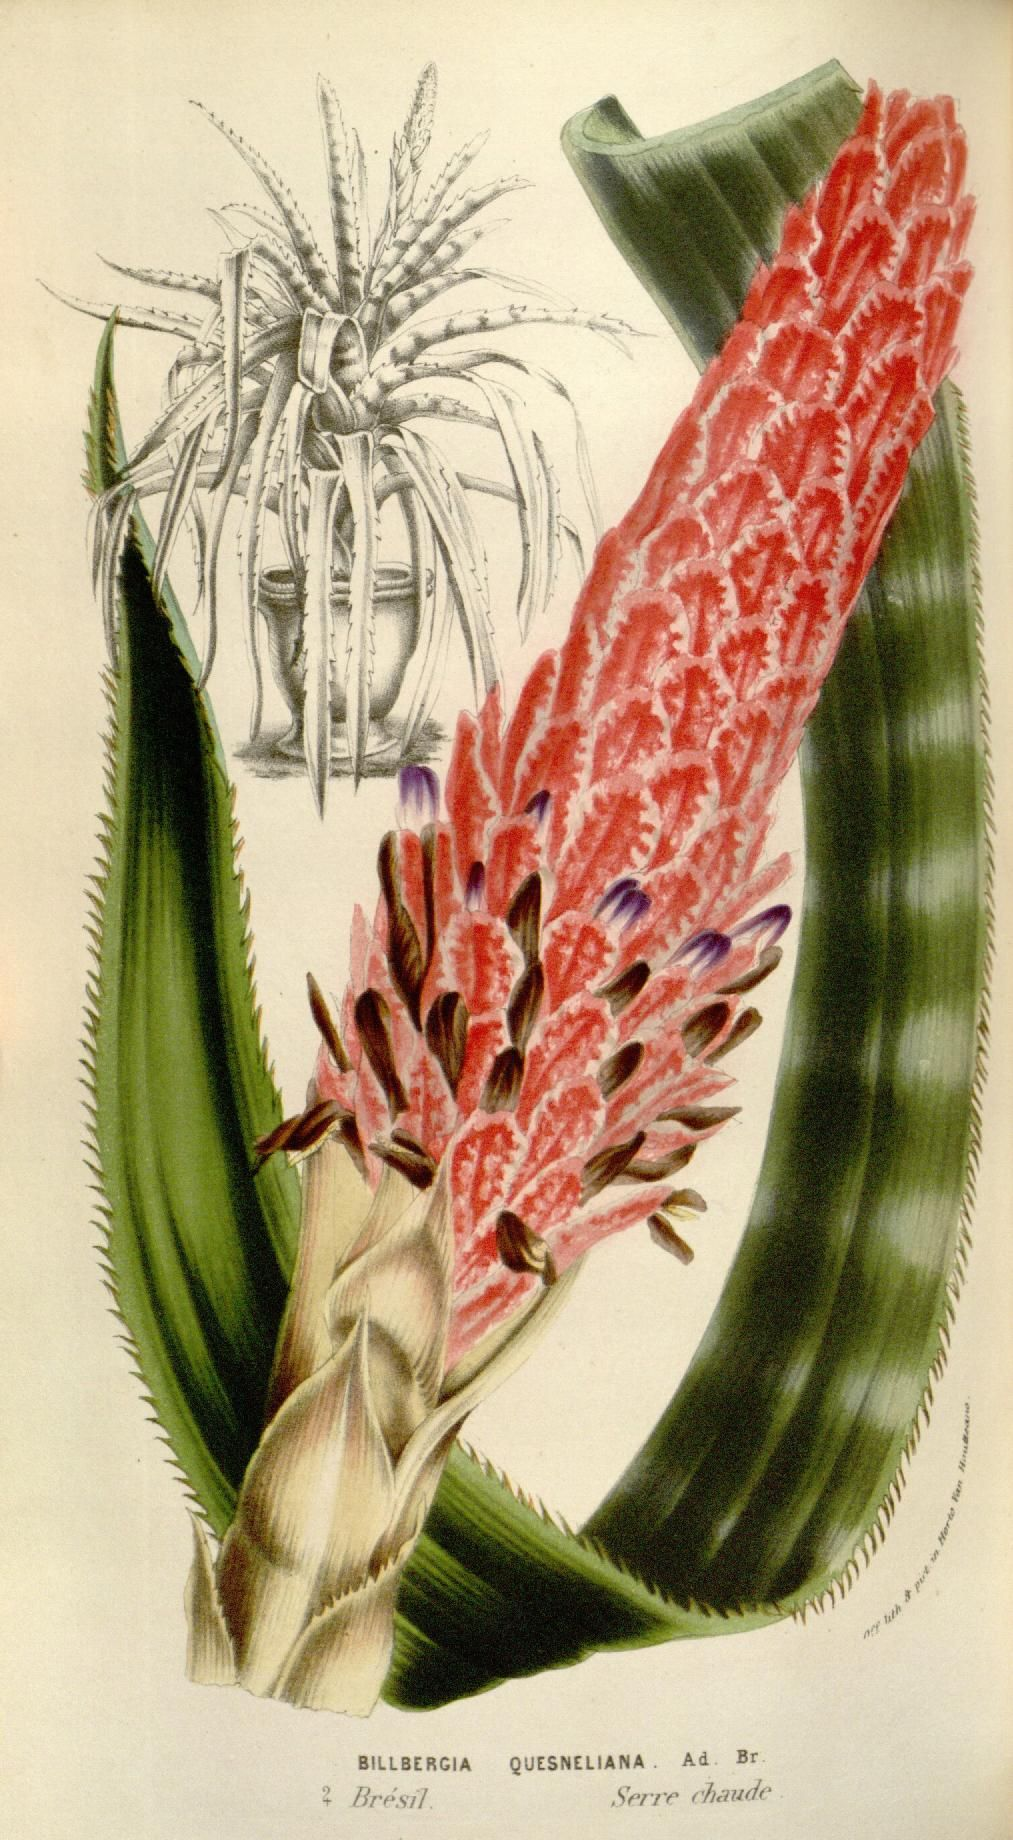 Billbergia quesneliana